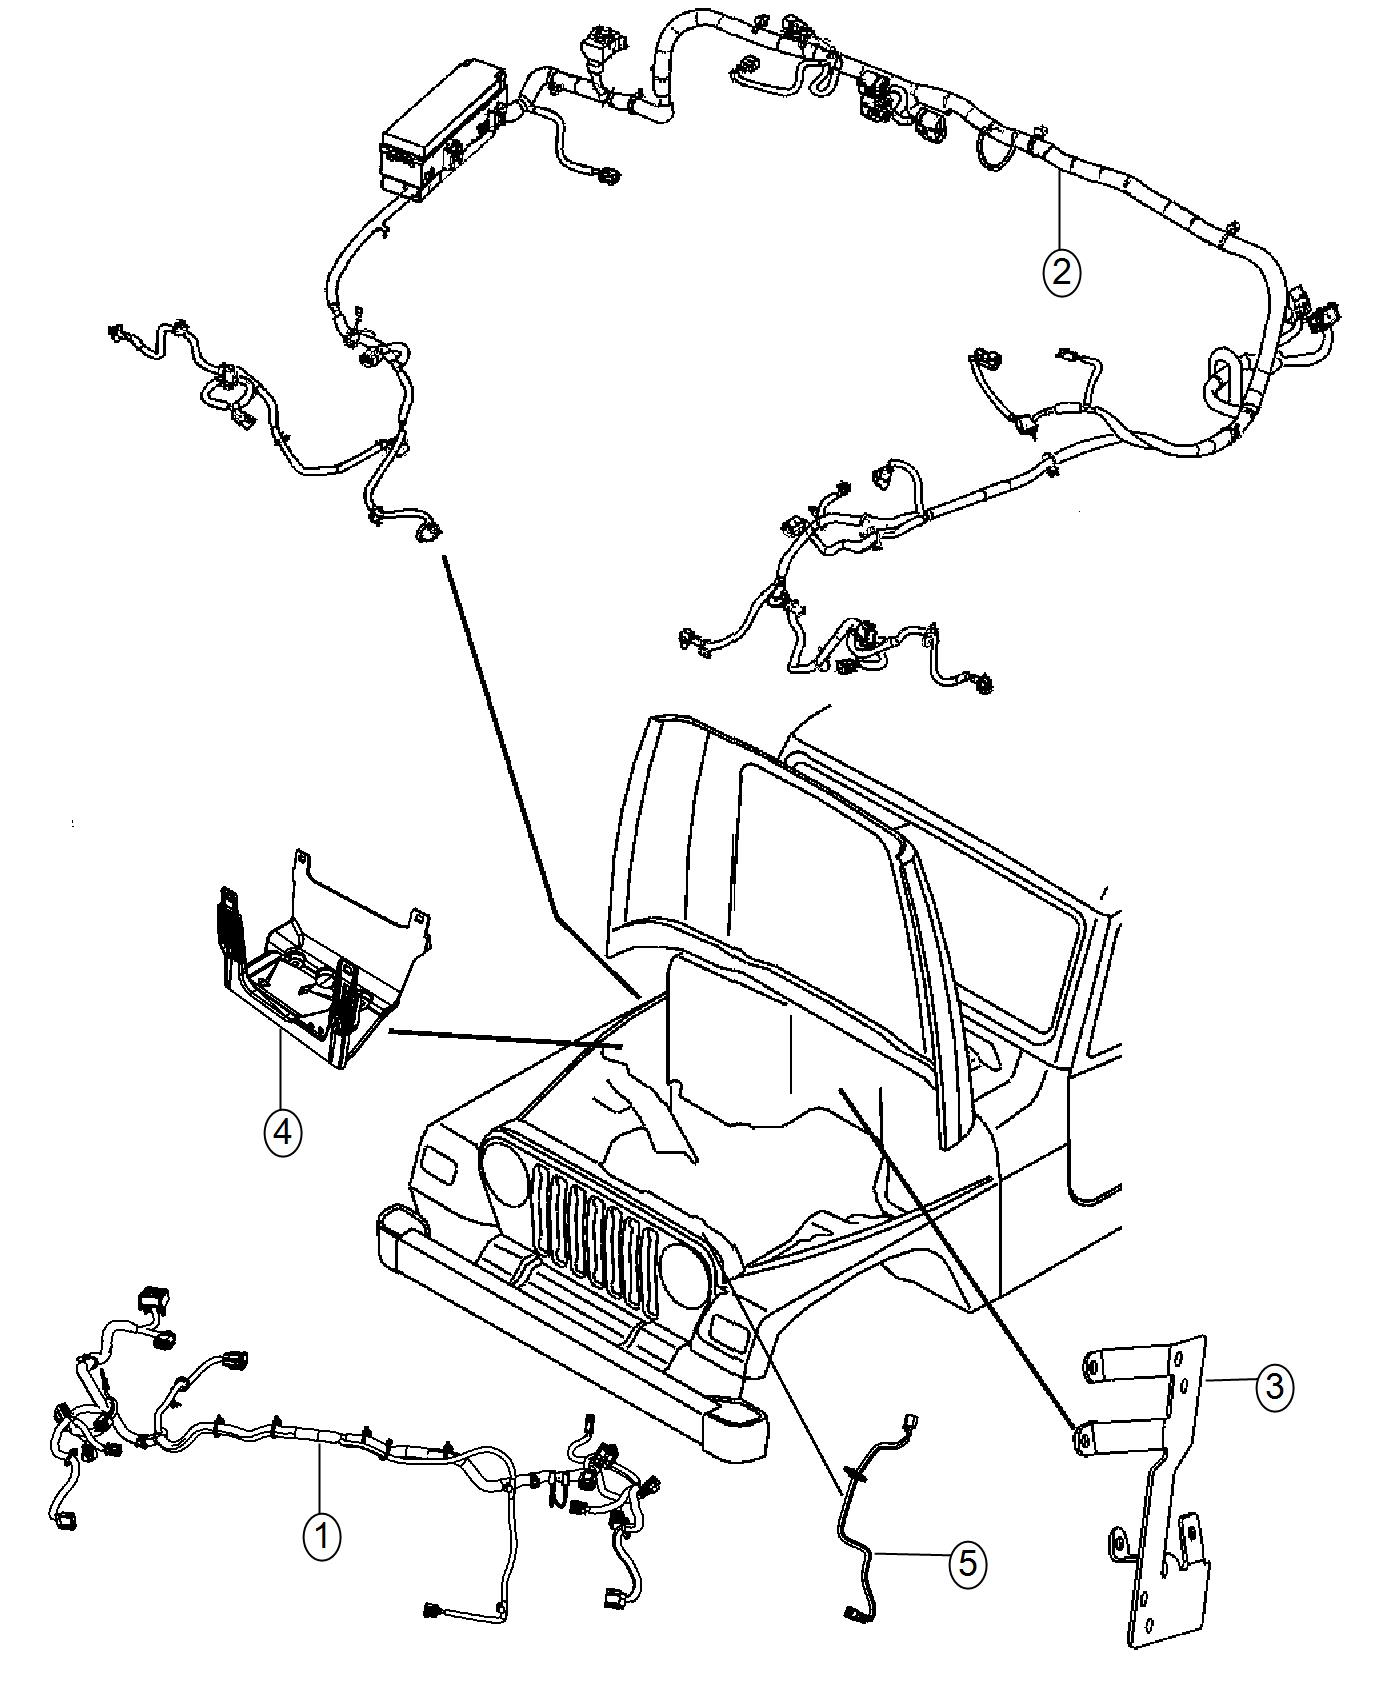 tags: #fisher snow plow wiring harness#fisher plow wiring troubleshooting# fisher 11 pin plow light wiring diagram#fisher plow light wiring schematic# fisher